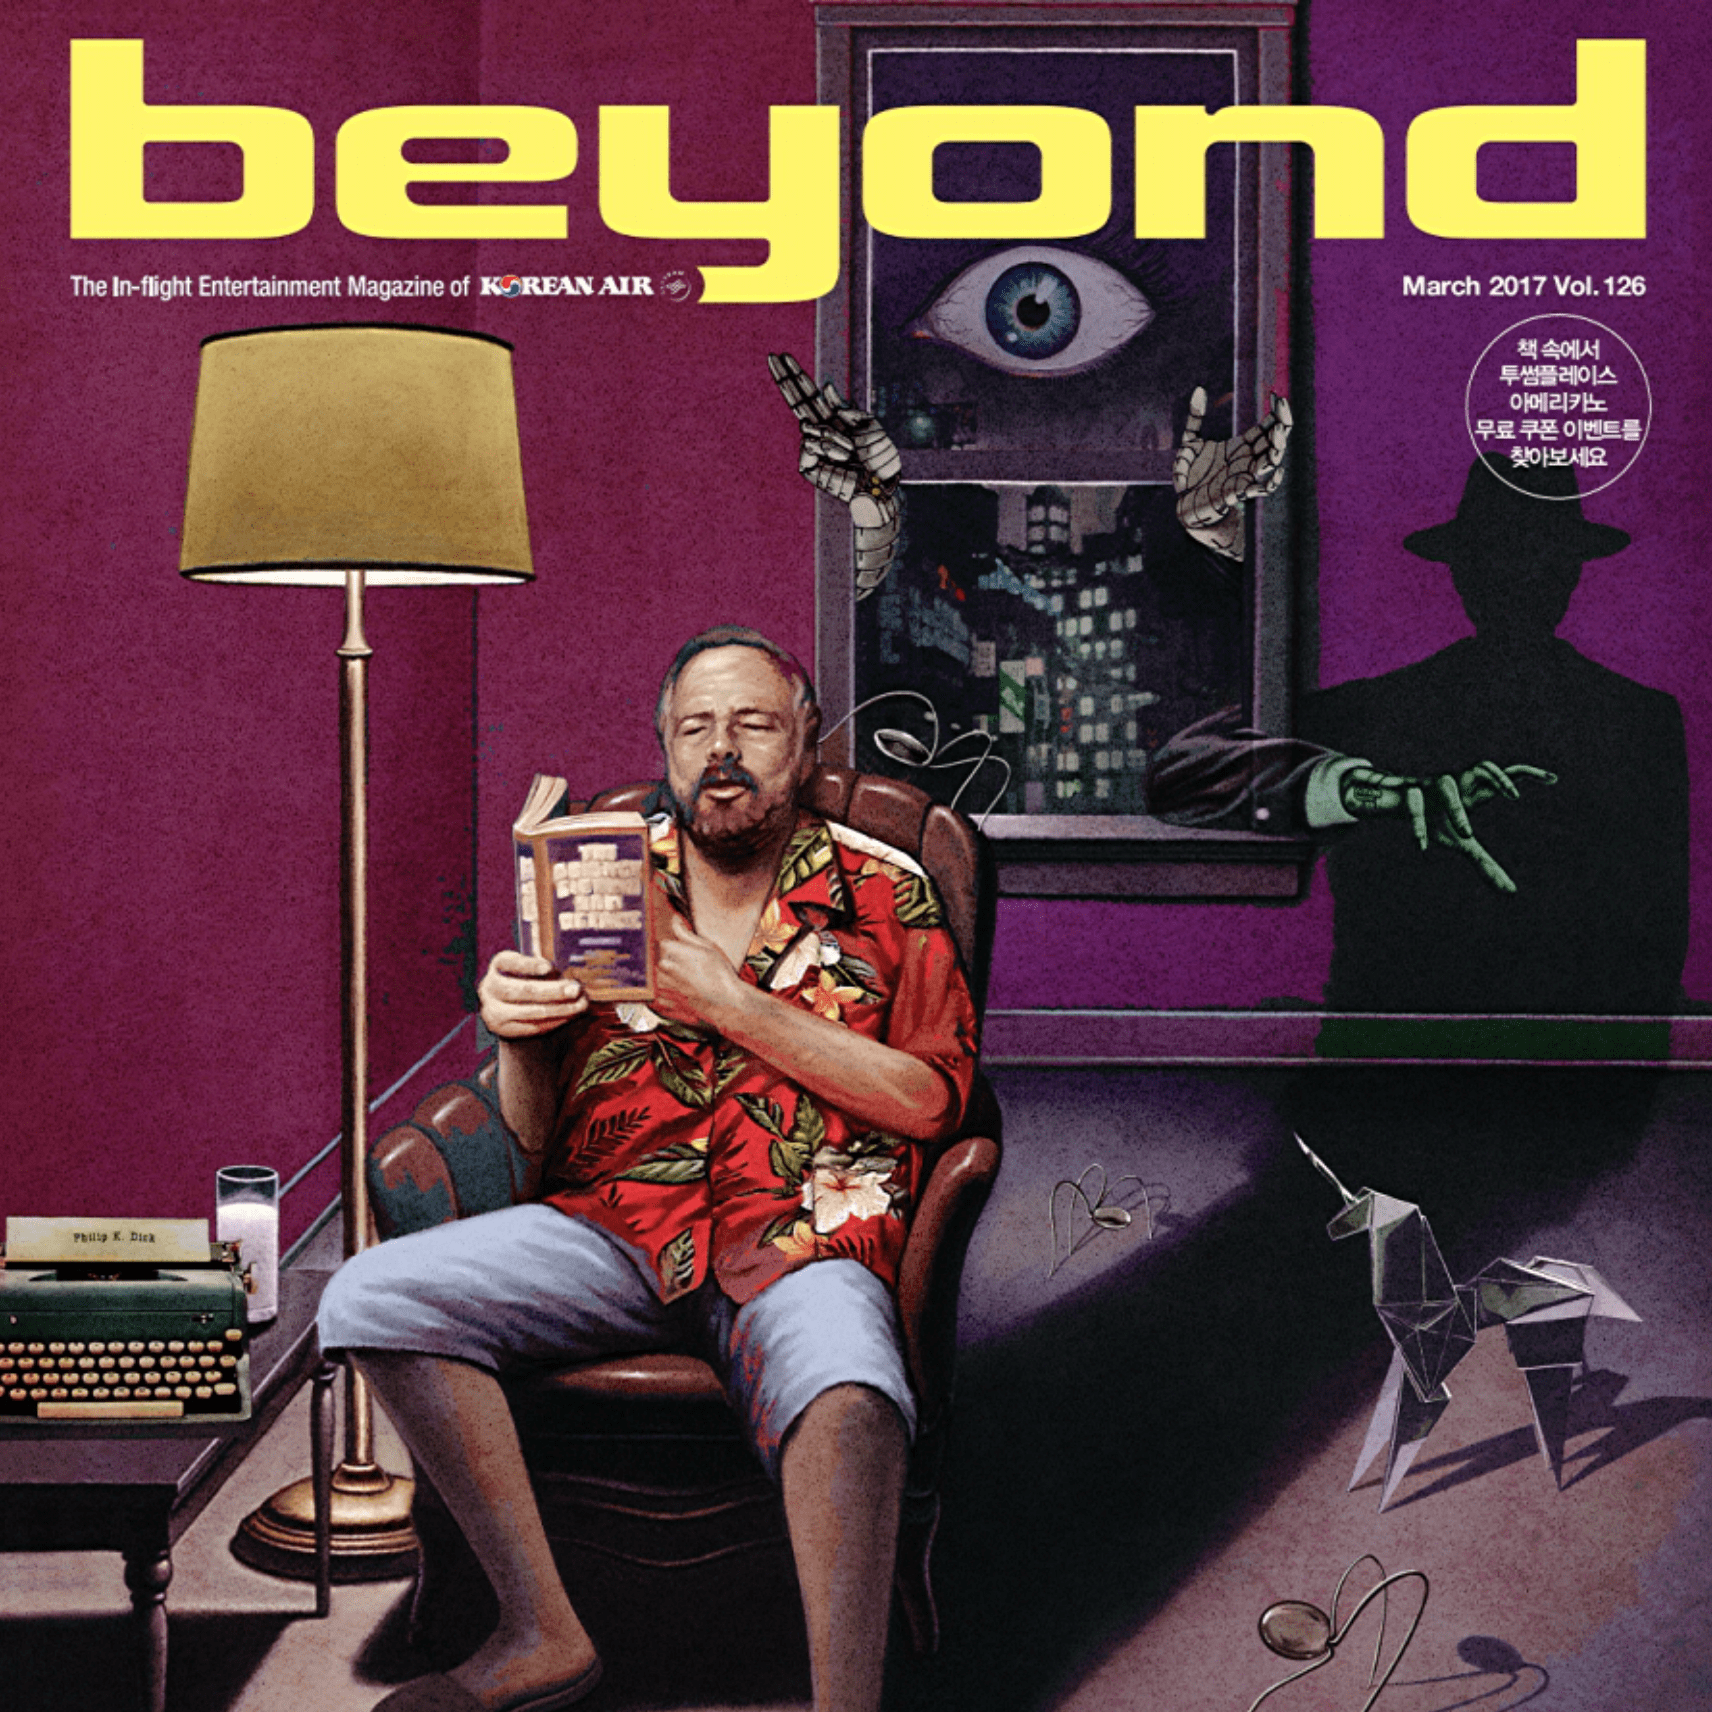 Beyond Vol. 126 - March 2017 - 112 pages